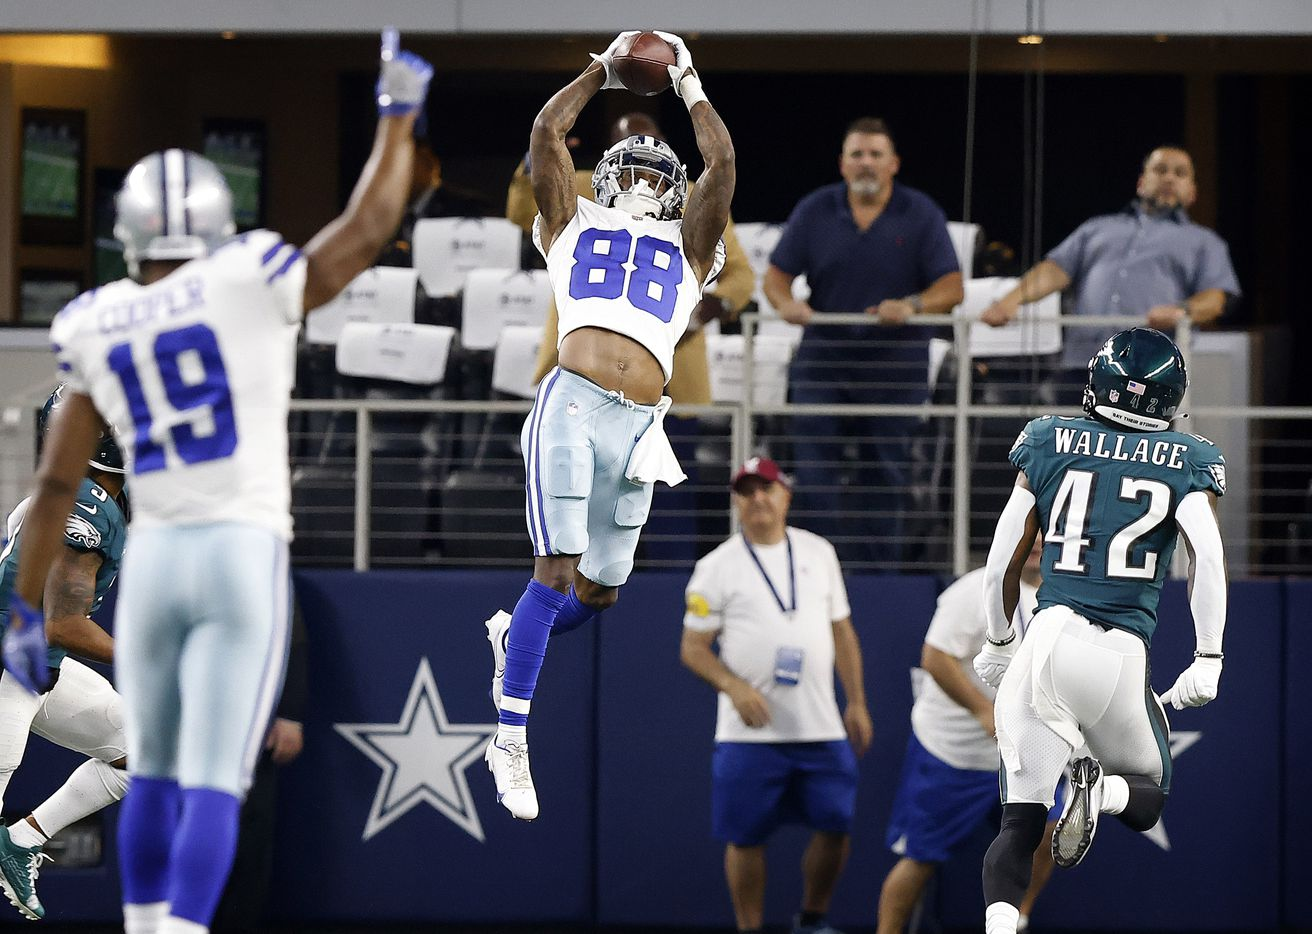 Dallas Cowboys wide receiver CeeDee Lamb (88) goes high to catch a long first quarter pass setting up the first touchdown against the Philadelphia Eagles at AT&T Stadium in Arlington, Monday, September 27, 2021. (Tom Fox/The Dallas Morning News)